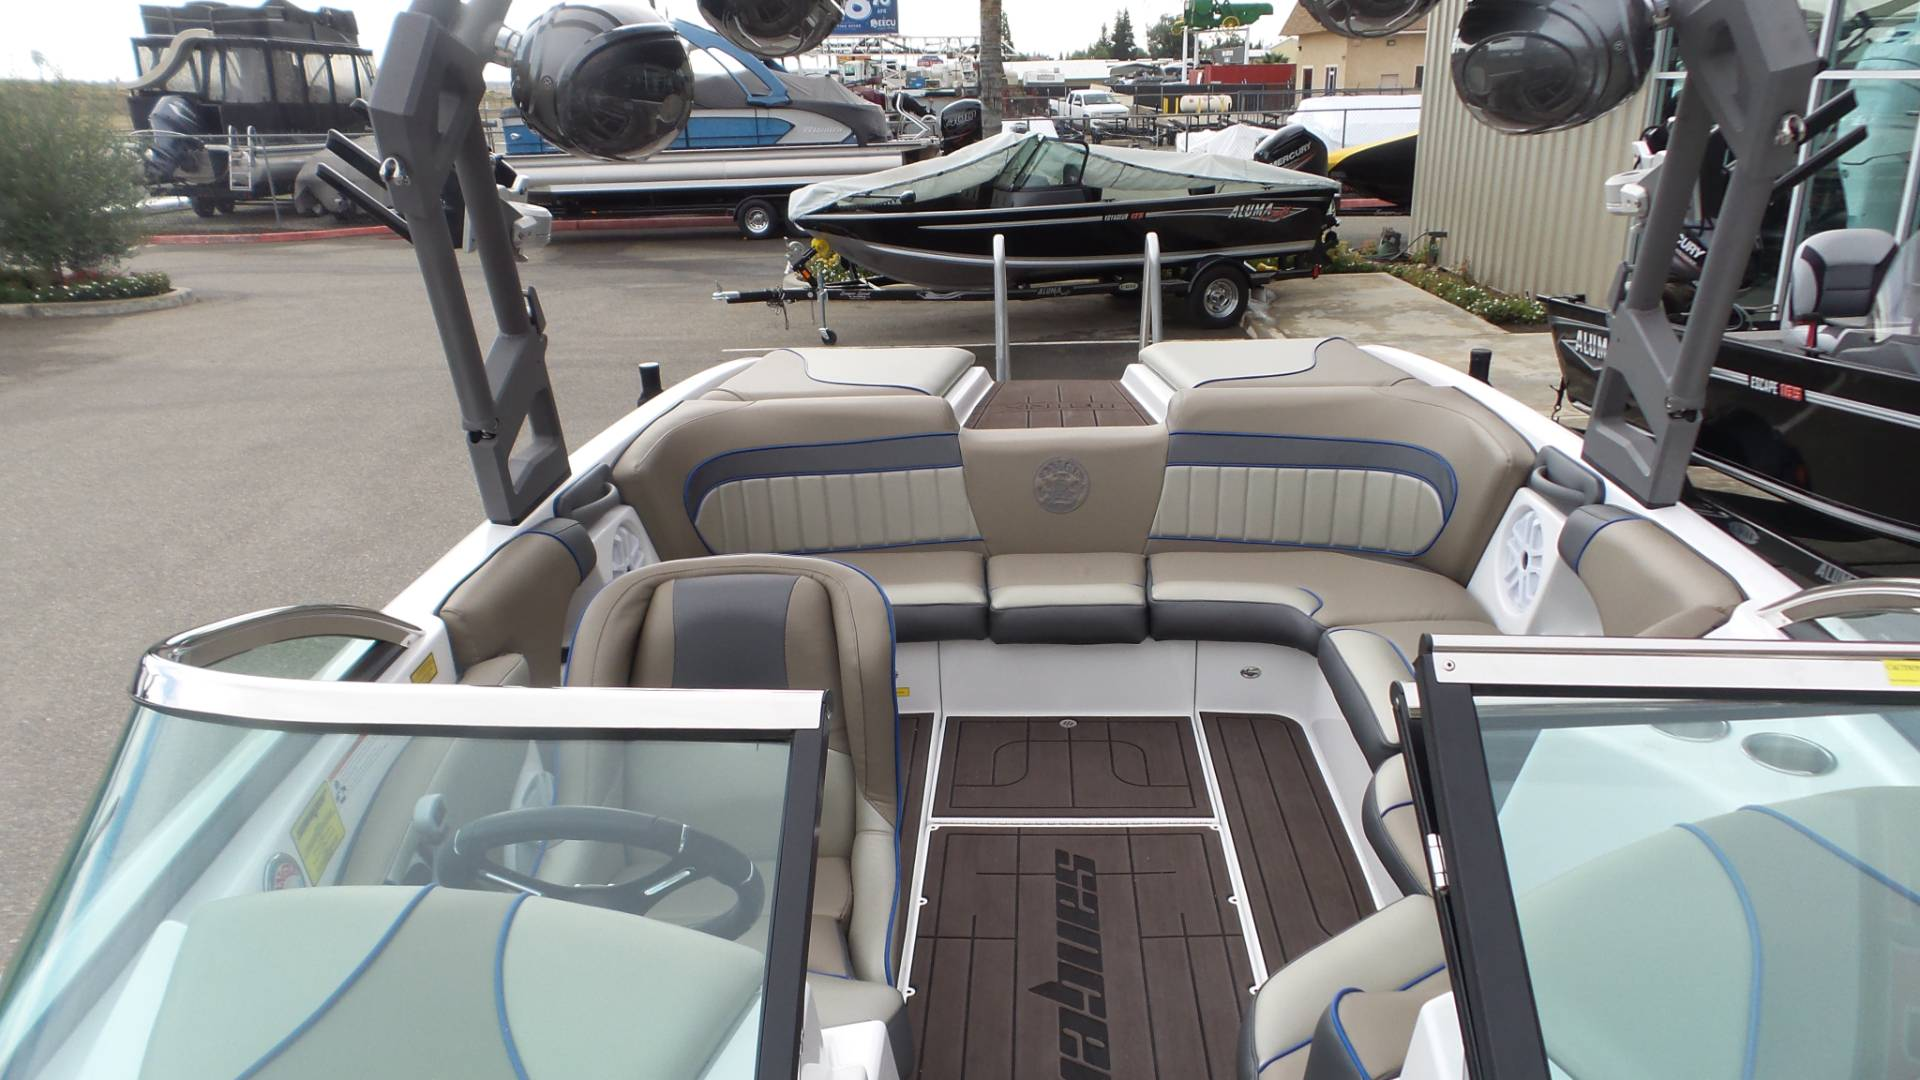 2019 Sanger Boats 212 in Madera, California